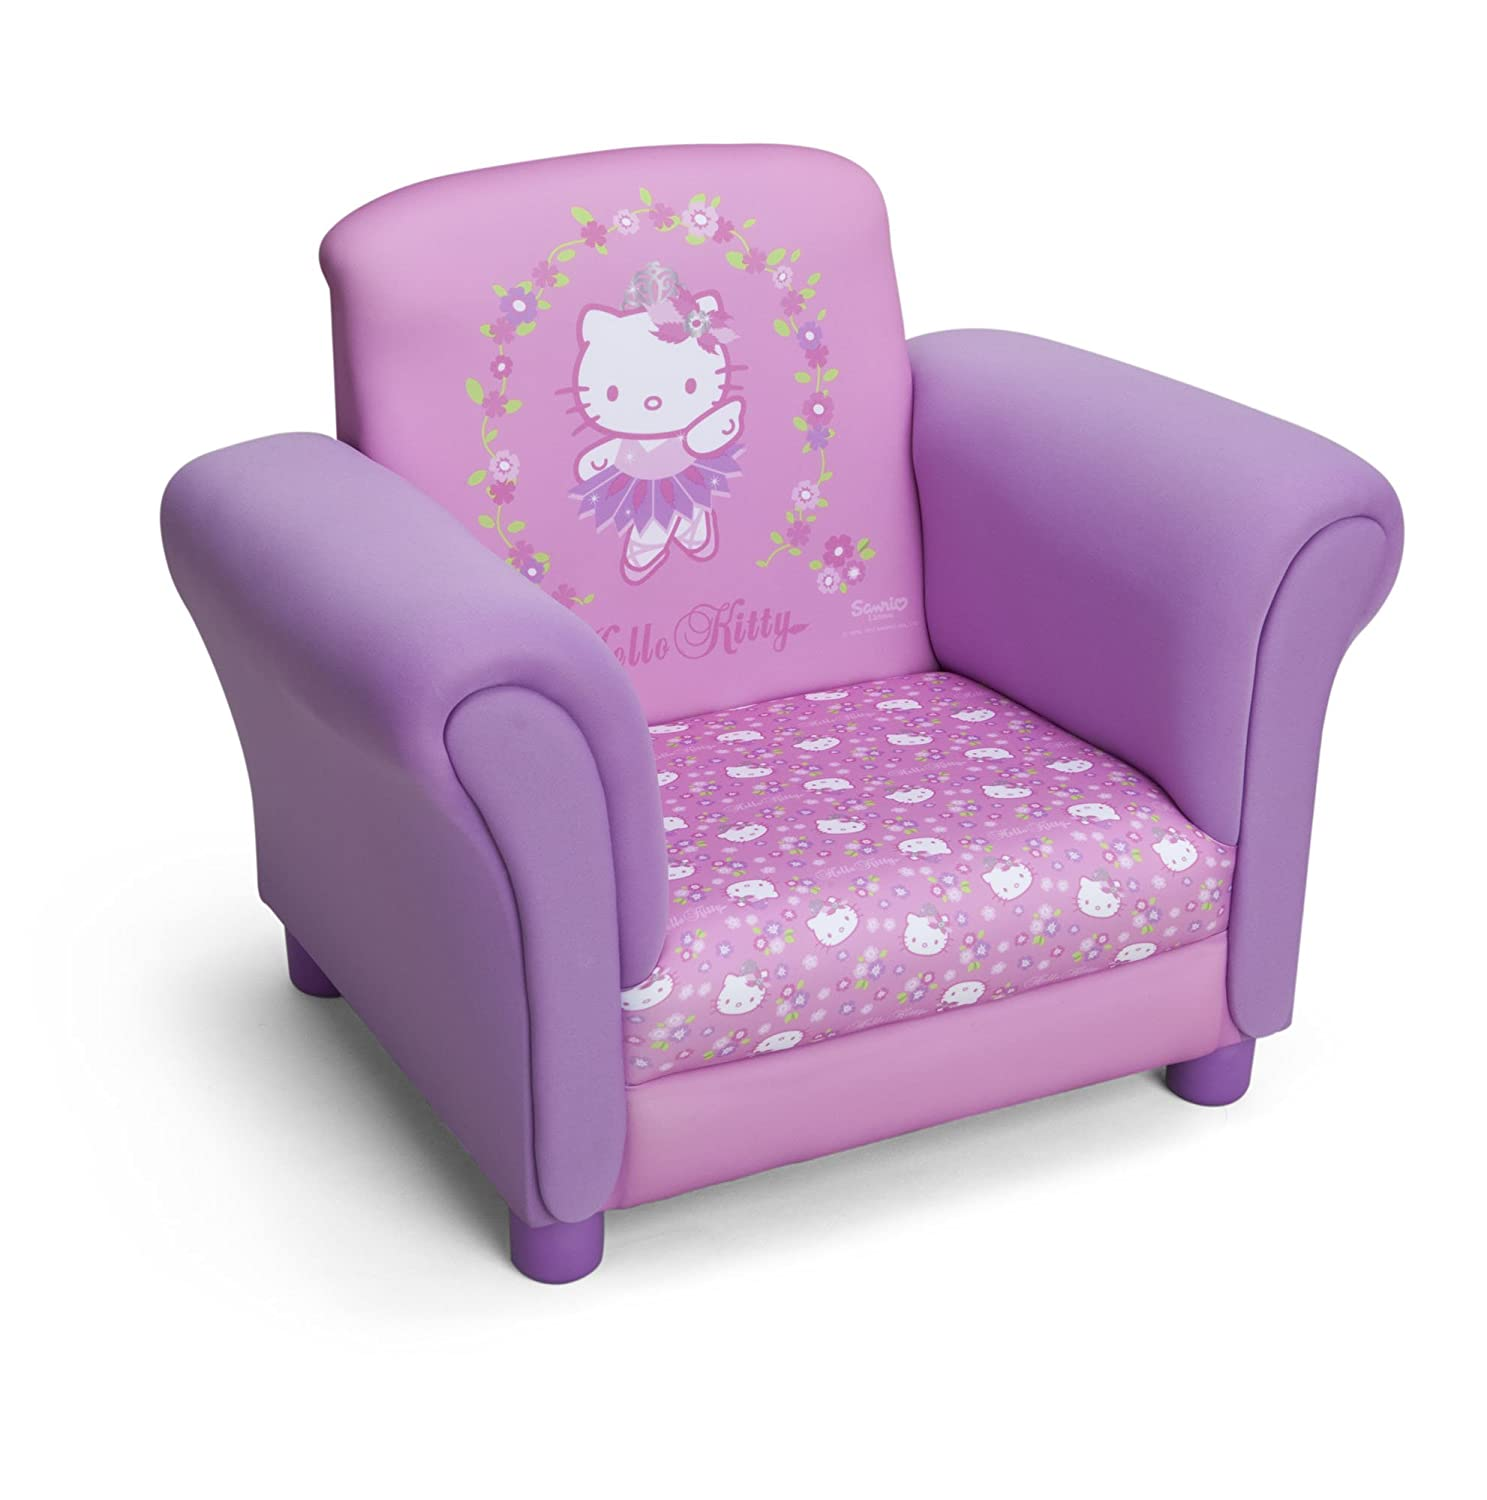 delta childrenus fauteuil enfant hello kitty amazonfr cuisine u maison with fauteuil chambre bb. Black Bedroom Furniture Sets. Home Design Ideas